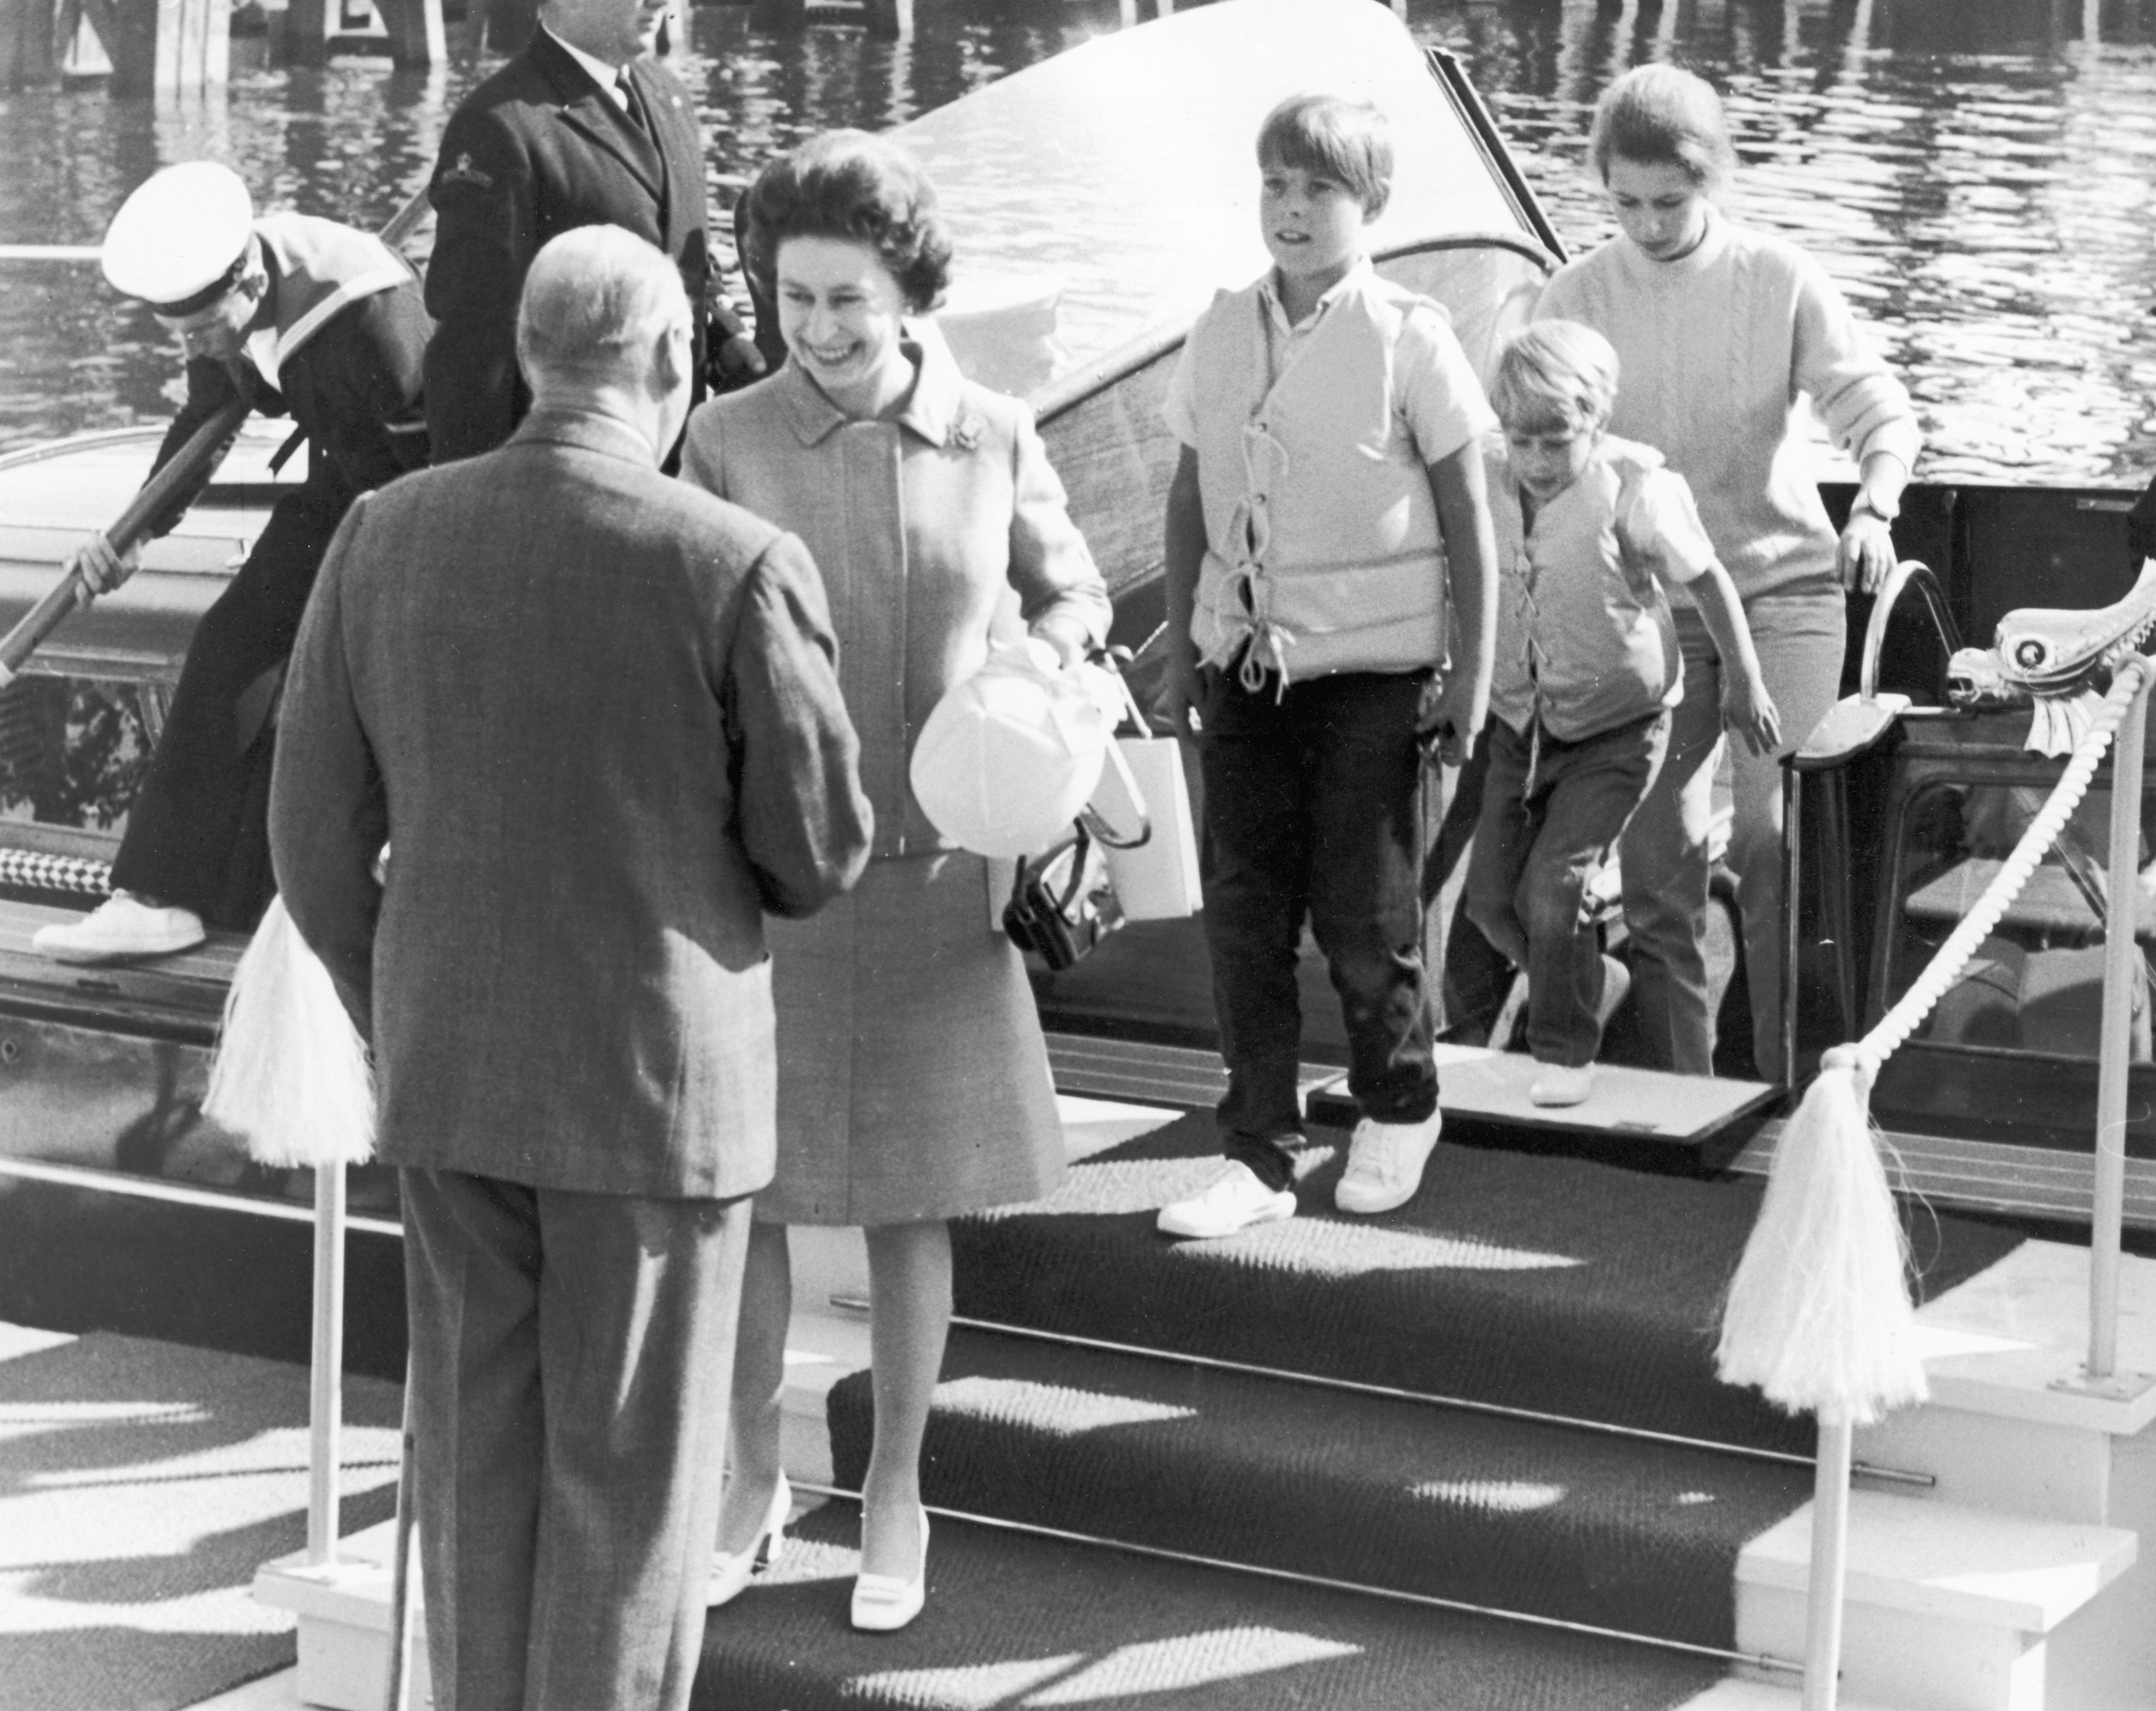 Royal Tour, The Queen meeting King Olaf of Norway. Prince Edward, Prince Andrew and Princess Anne. 13th June 1969.